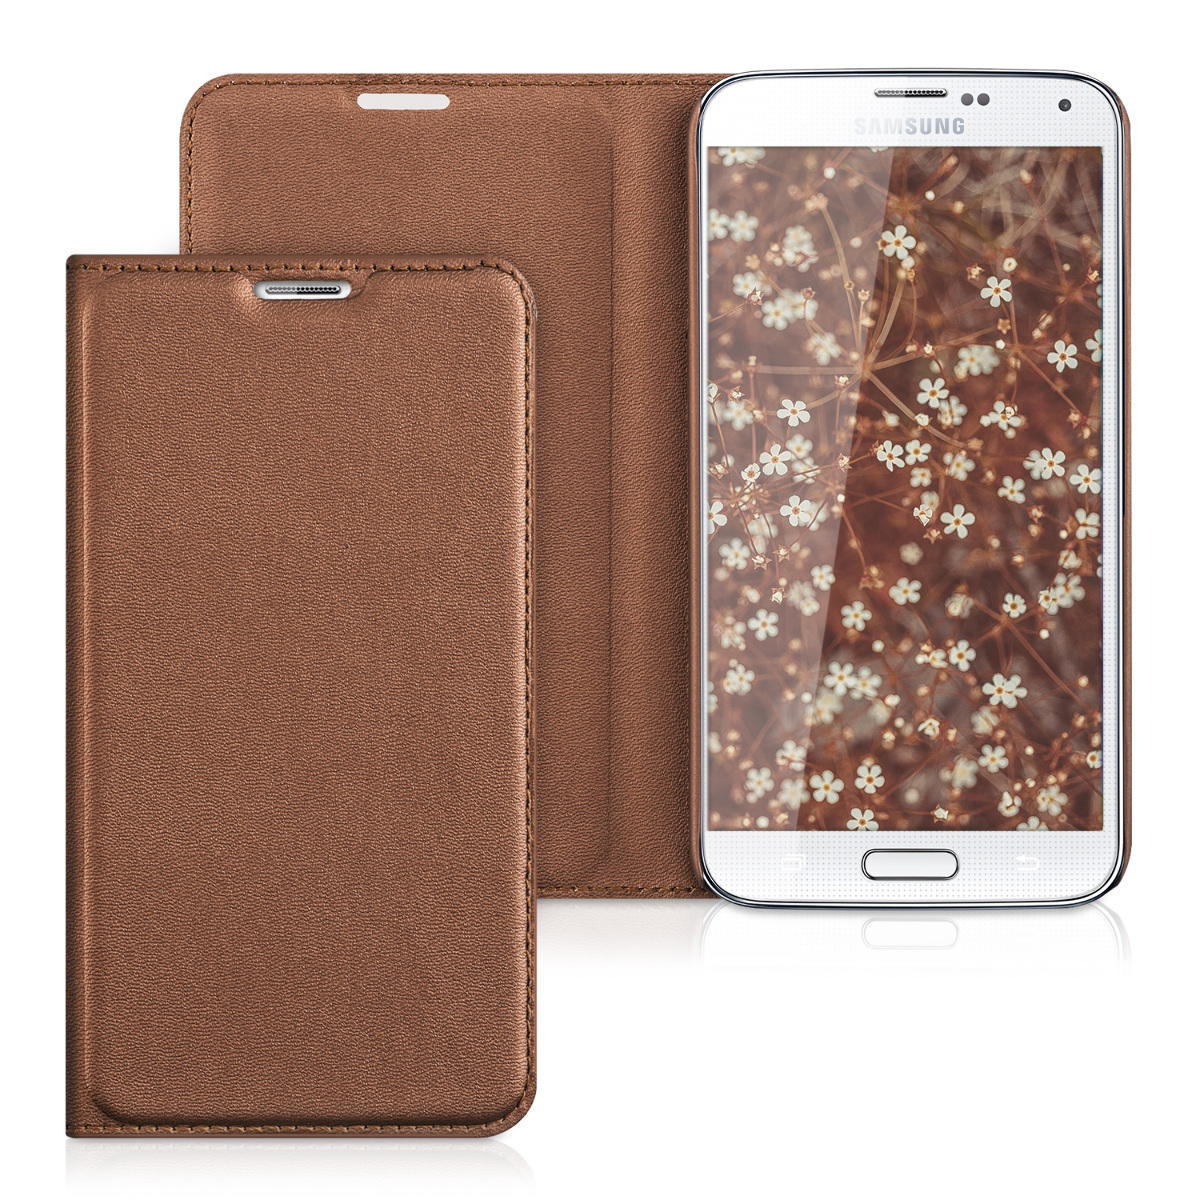 kwmobile Practical and chic FLIP COVER protective shell for Samsung Galaxy S5 / S5 Neo in Copper